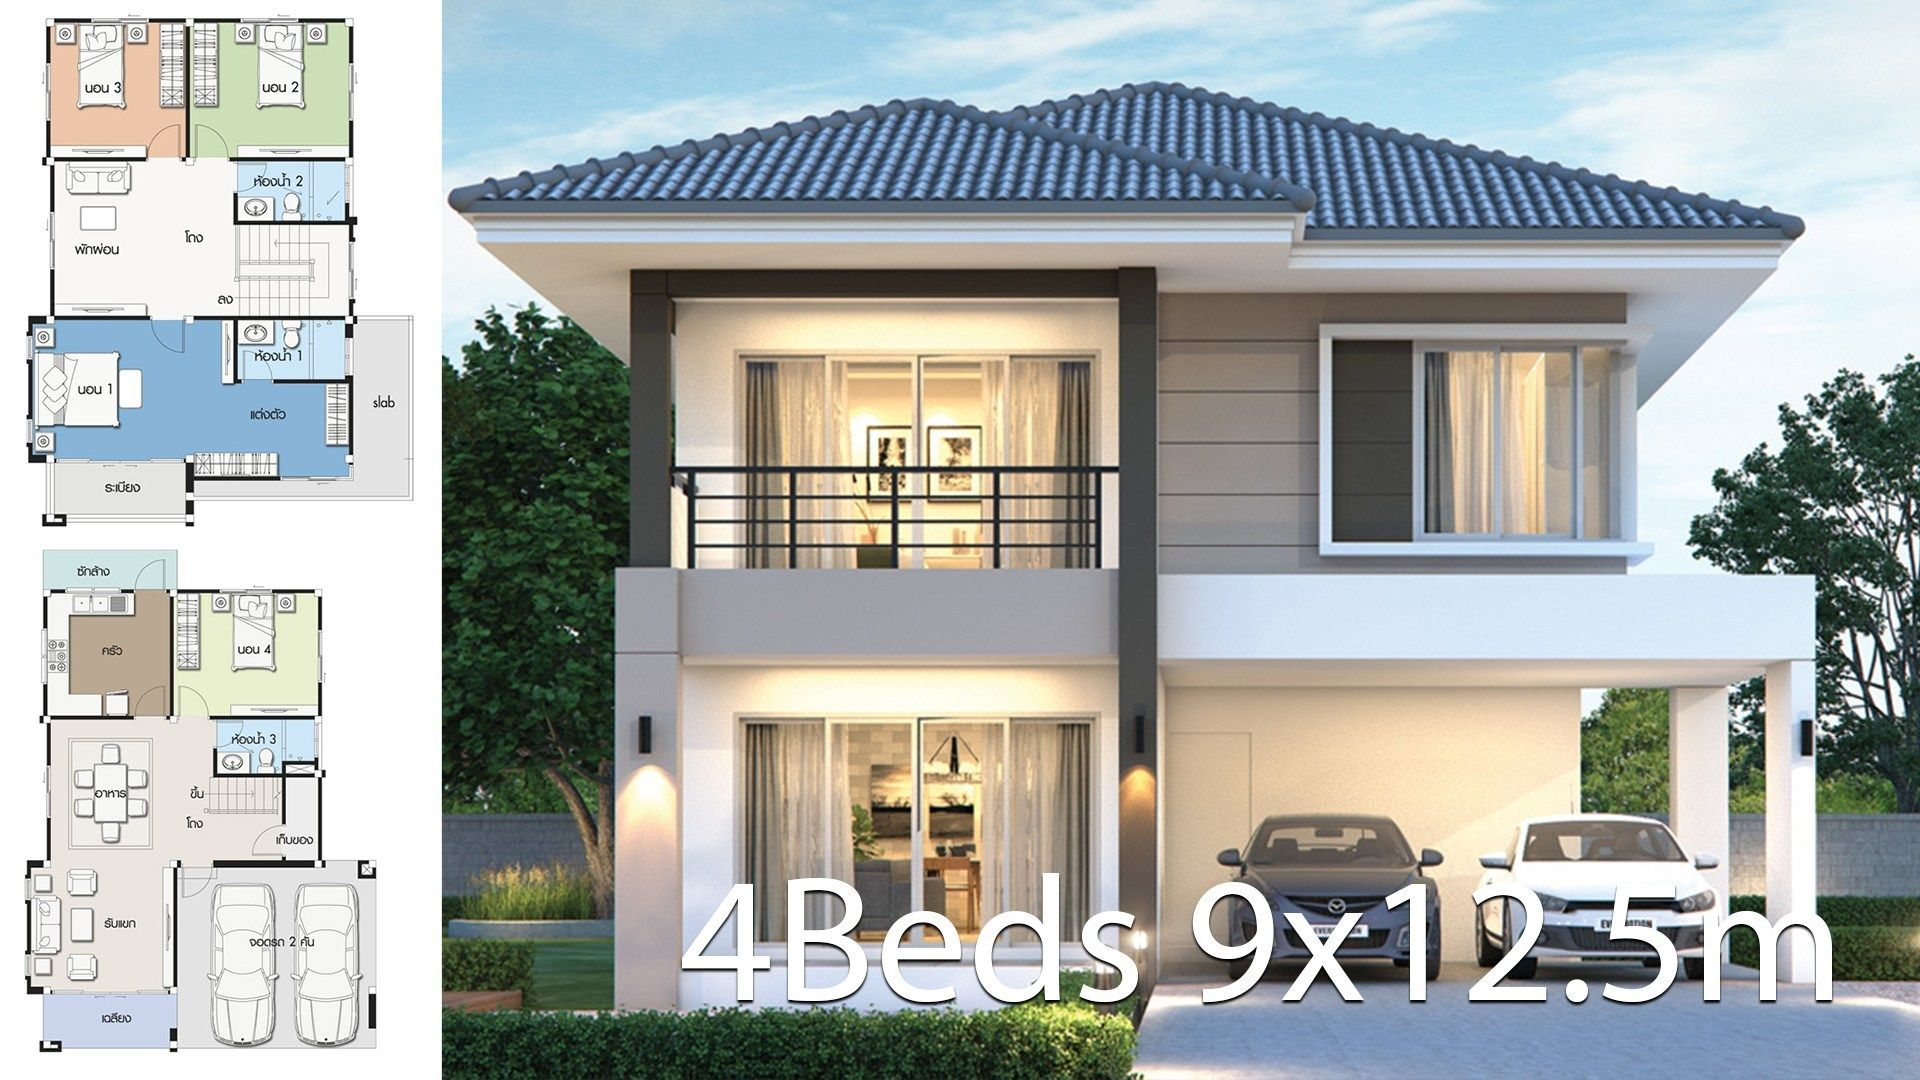 House Design Plan 9x12 5m With 4 Bedroom Style Contemporaryhouse Description Number O Architect Design House Architectural House Plans 4 Bedroom House Designs